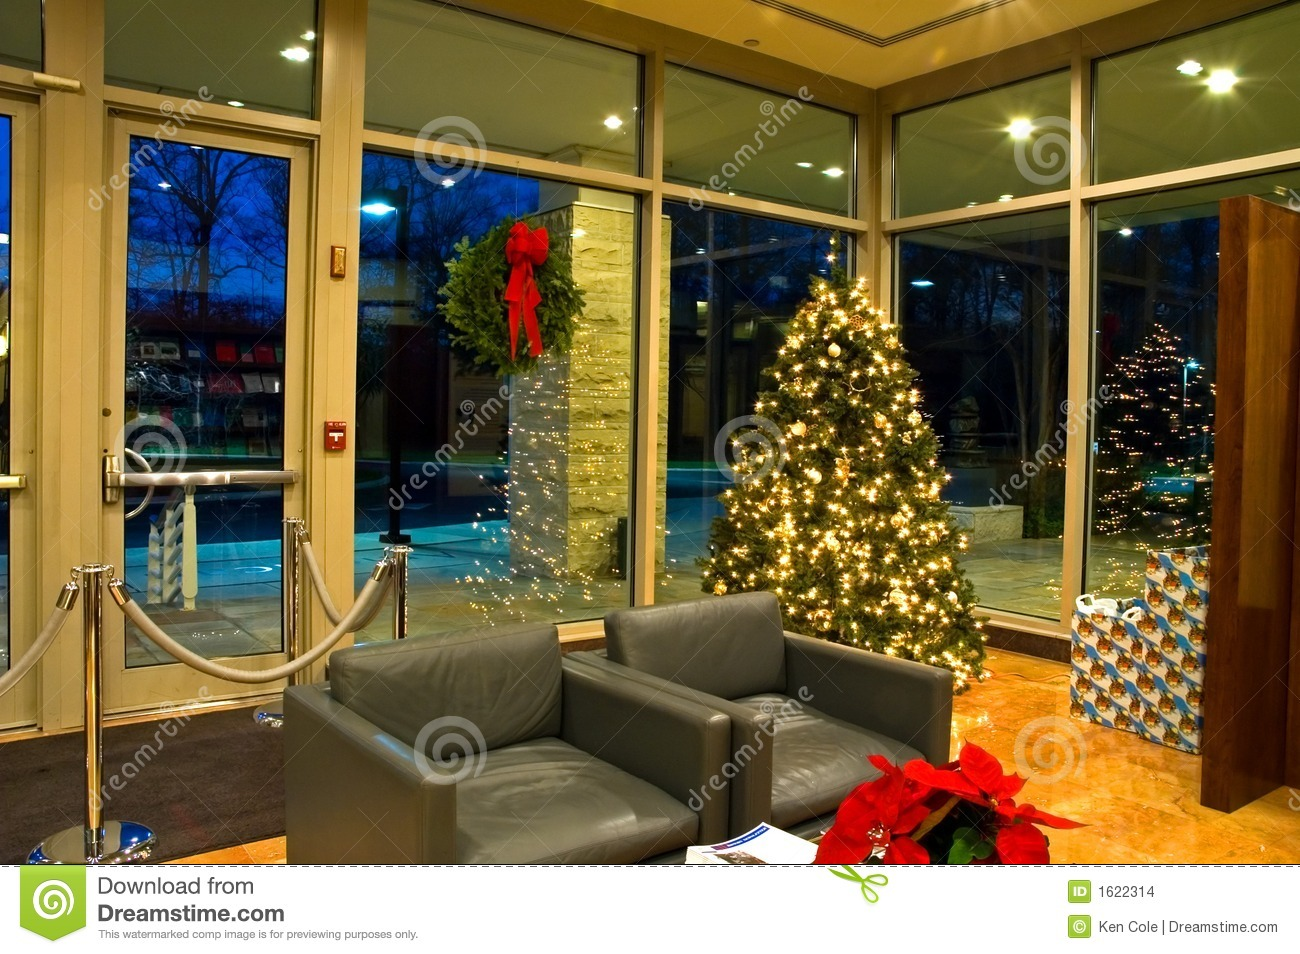 Christmas Tree In Office Lobby  2 Stock Photo  Image of office entrance 1622314